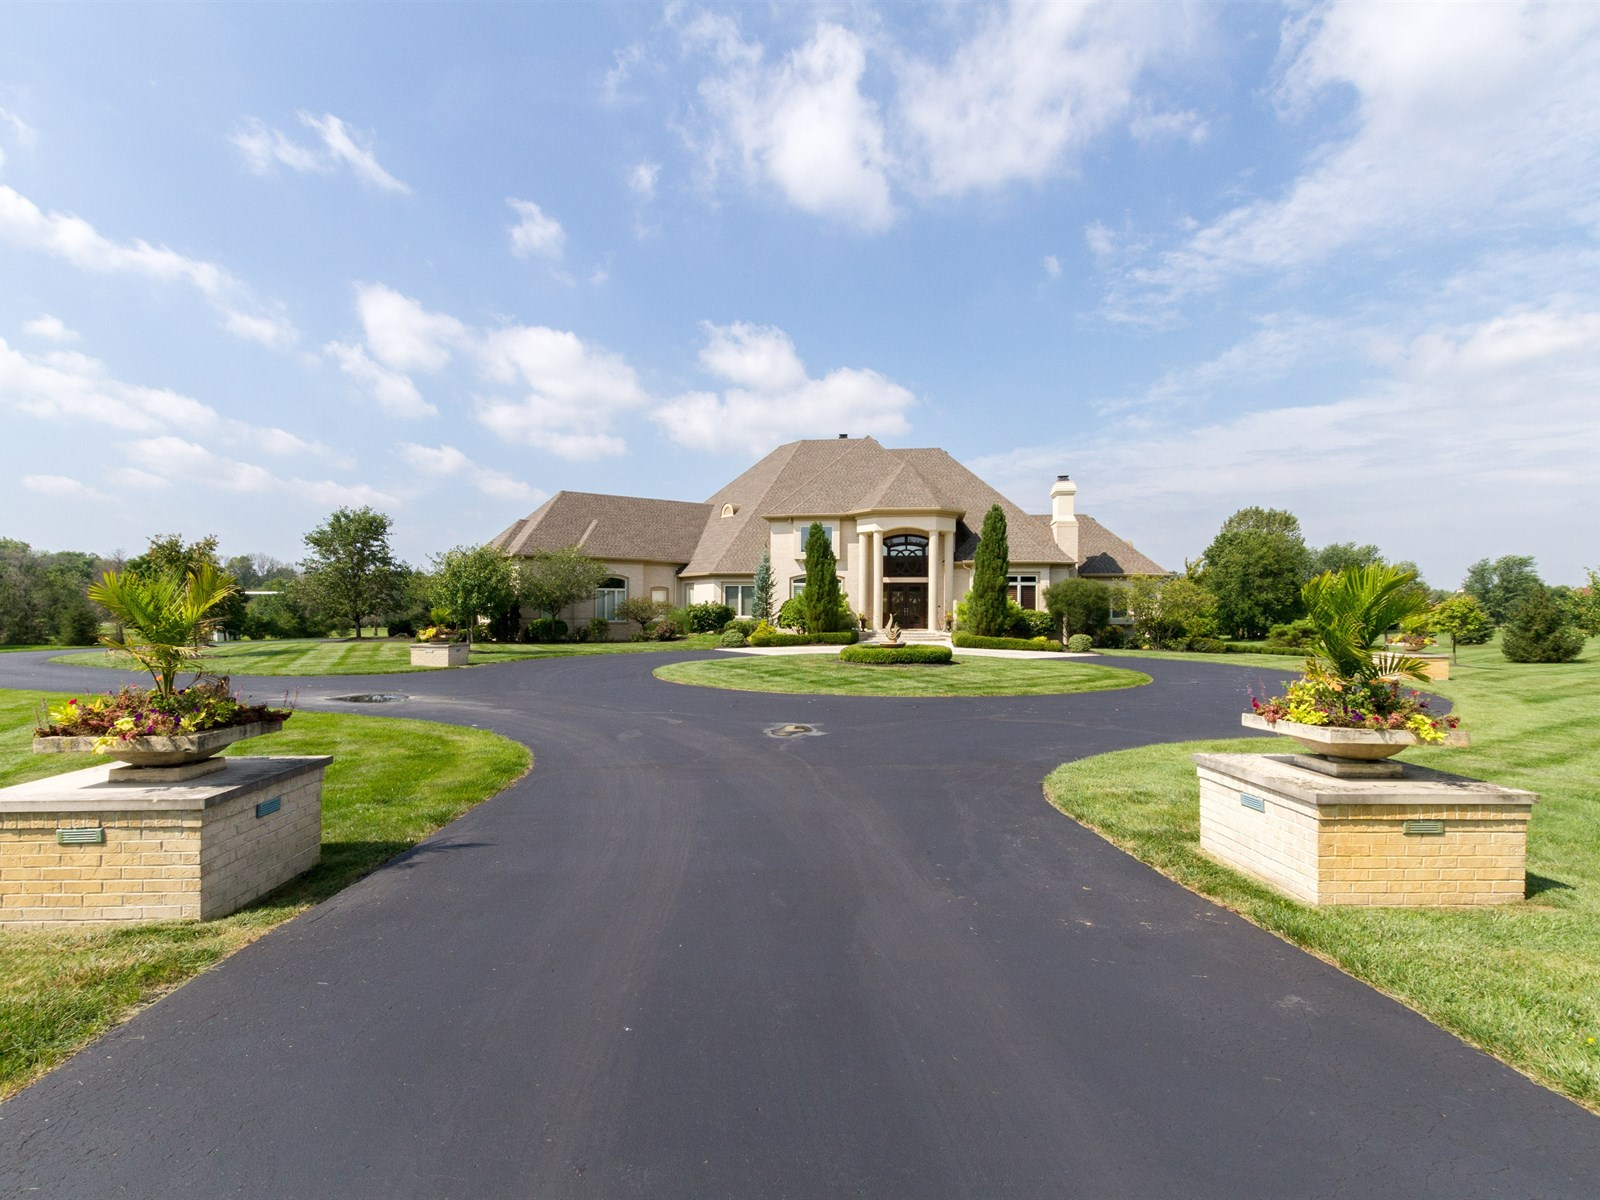 11085 Queens Way Cir., Carmel, Indiana 46032